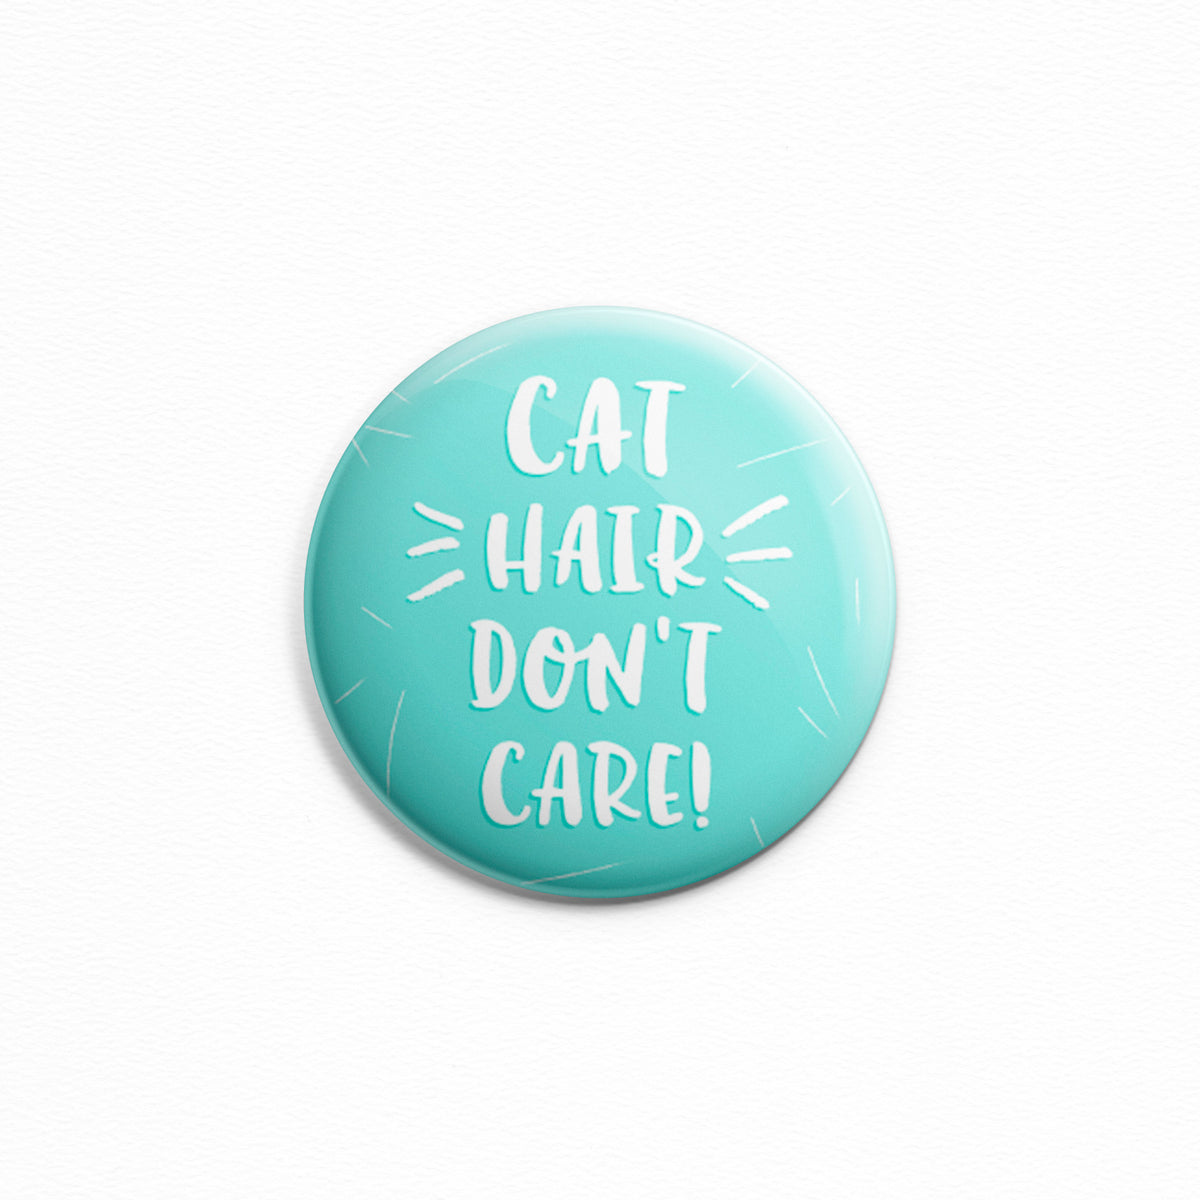 Cat Hair Don't Care - Button or magnet with typography.